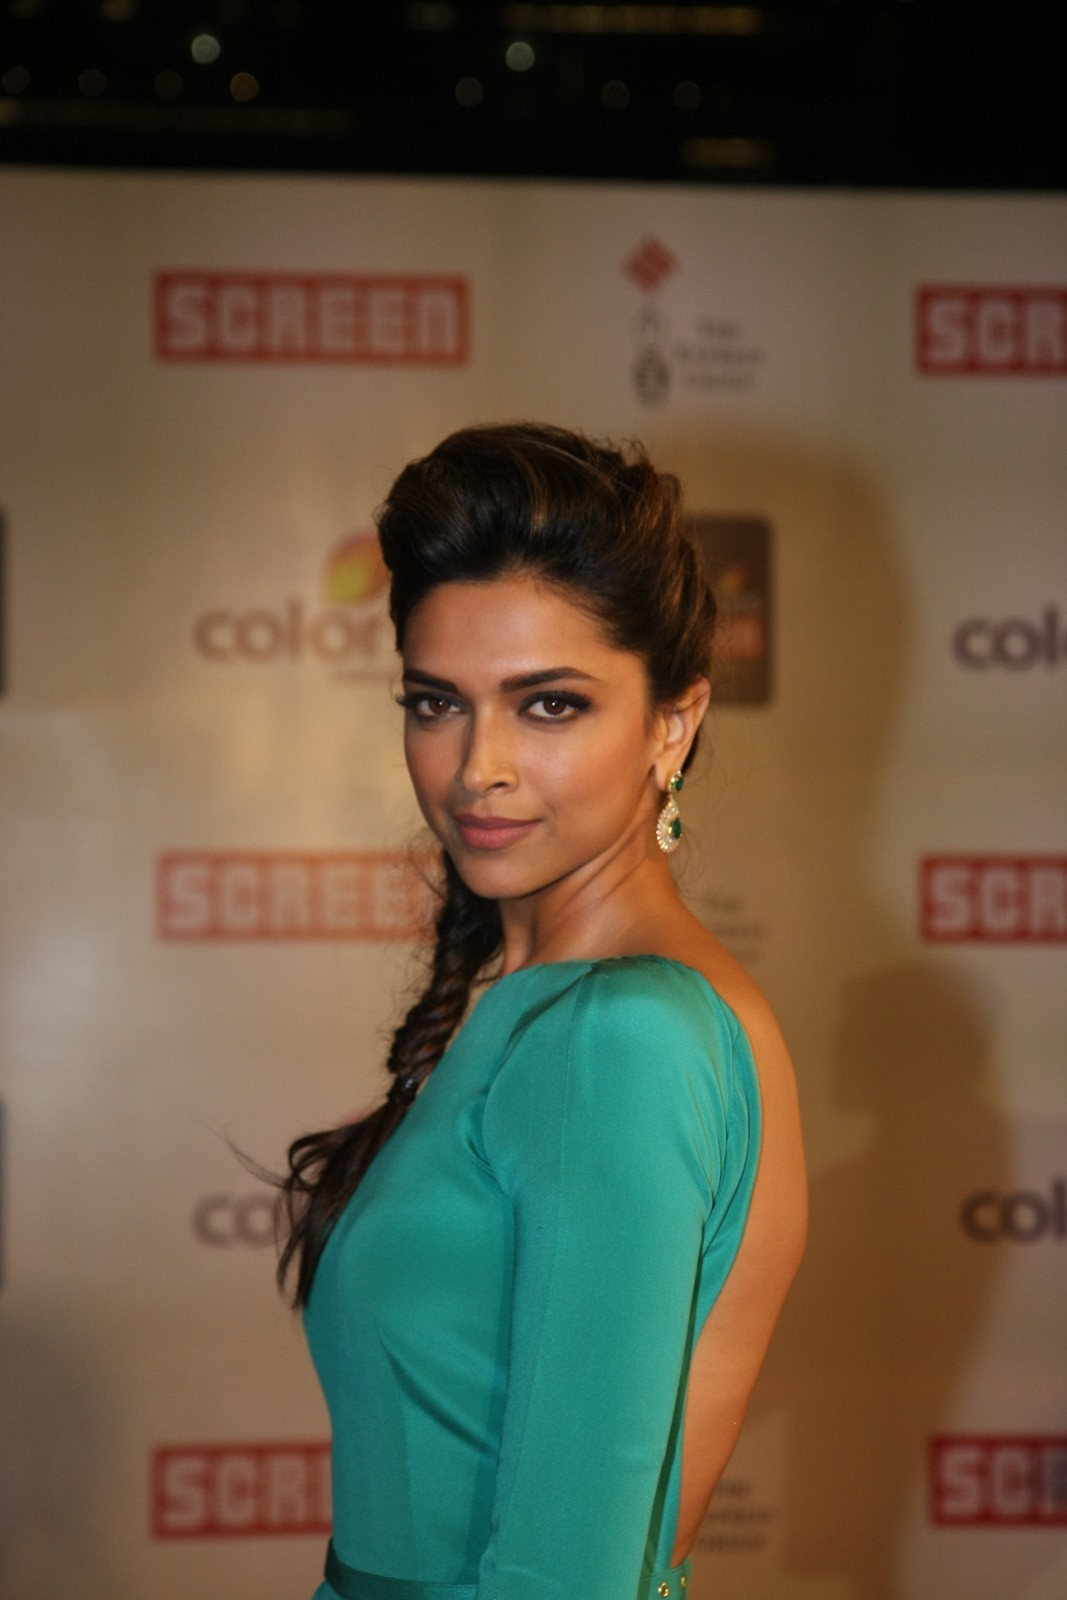 Deepika Padukone, Deepika Padukone black dress, Deepika Padukone hot red, Deepika Padukone new pics, hot Deepika Padukone,